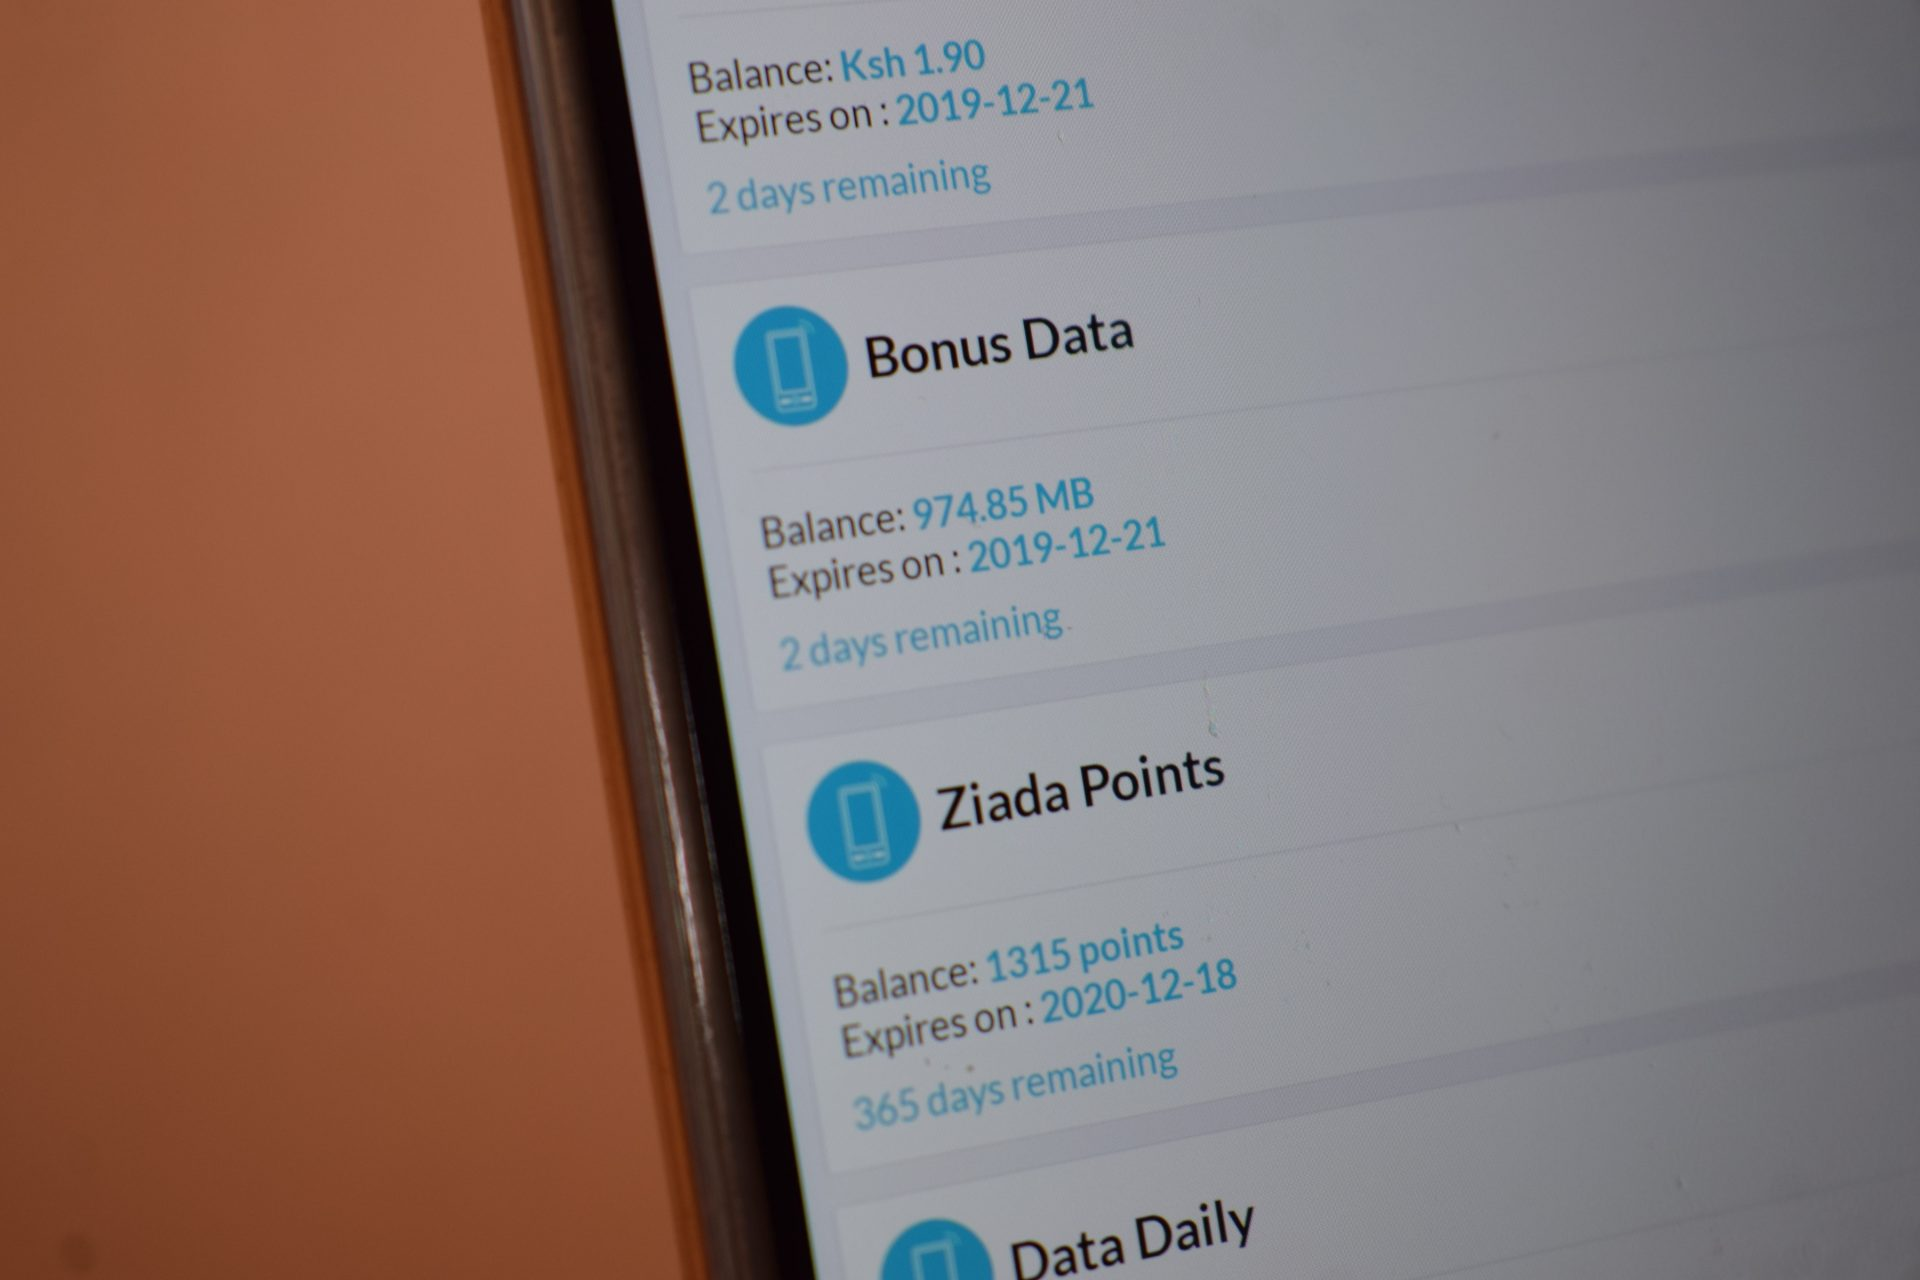 Telkom Kenya Makes It Even Easier To Top Up From M Pesa With New Menu